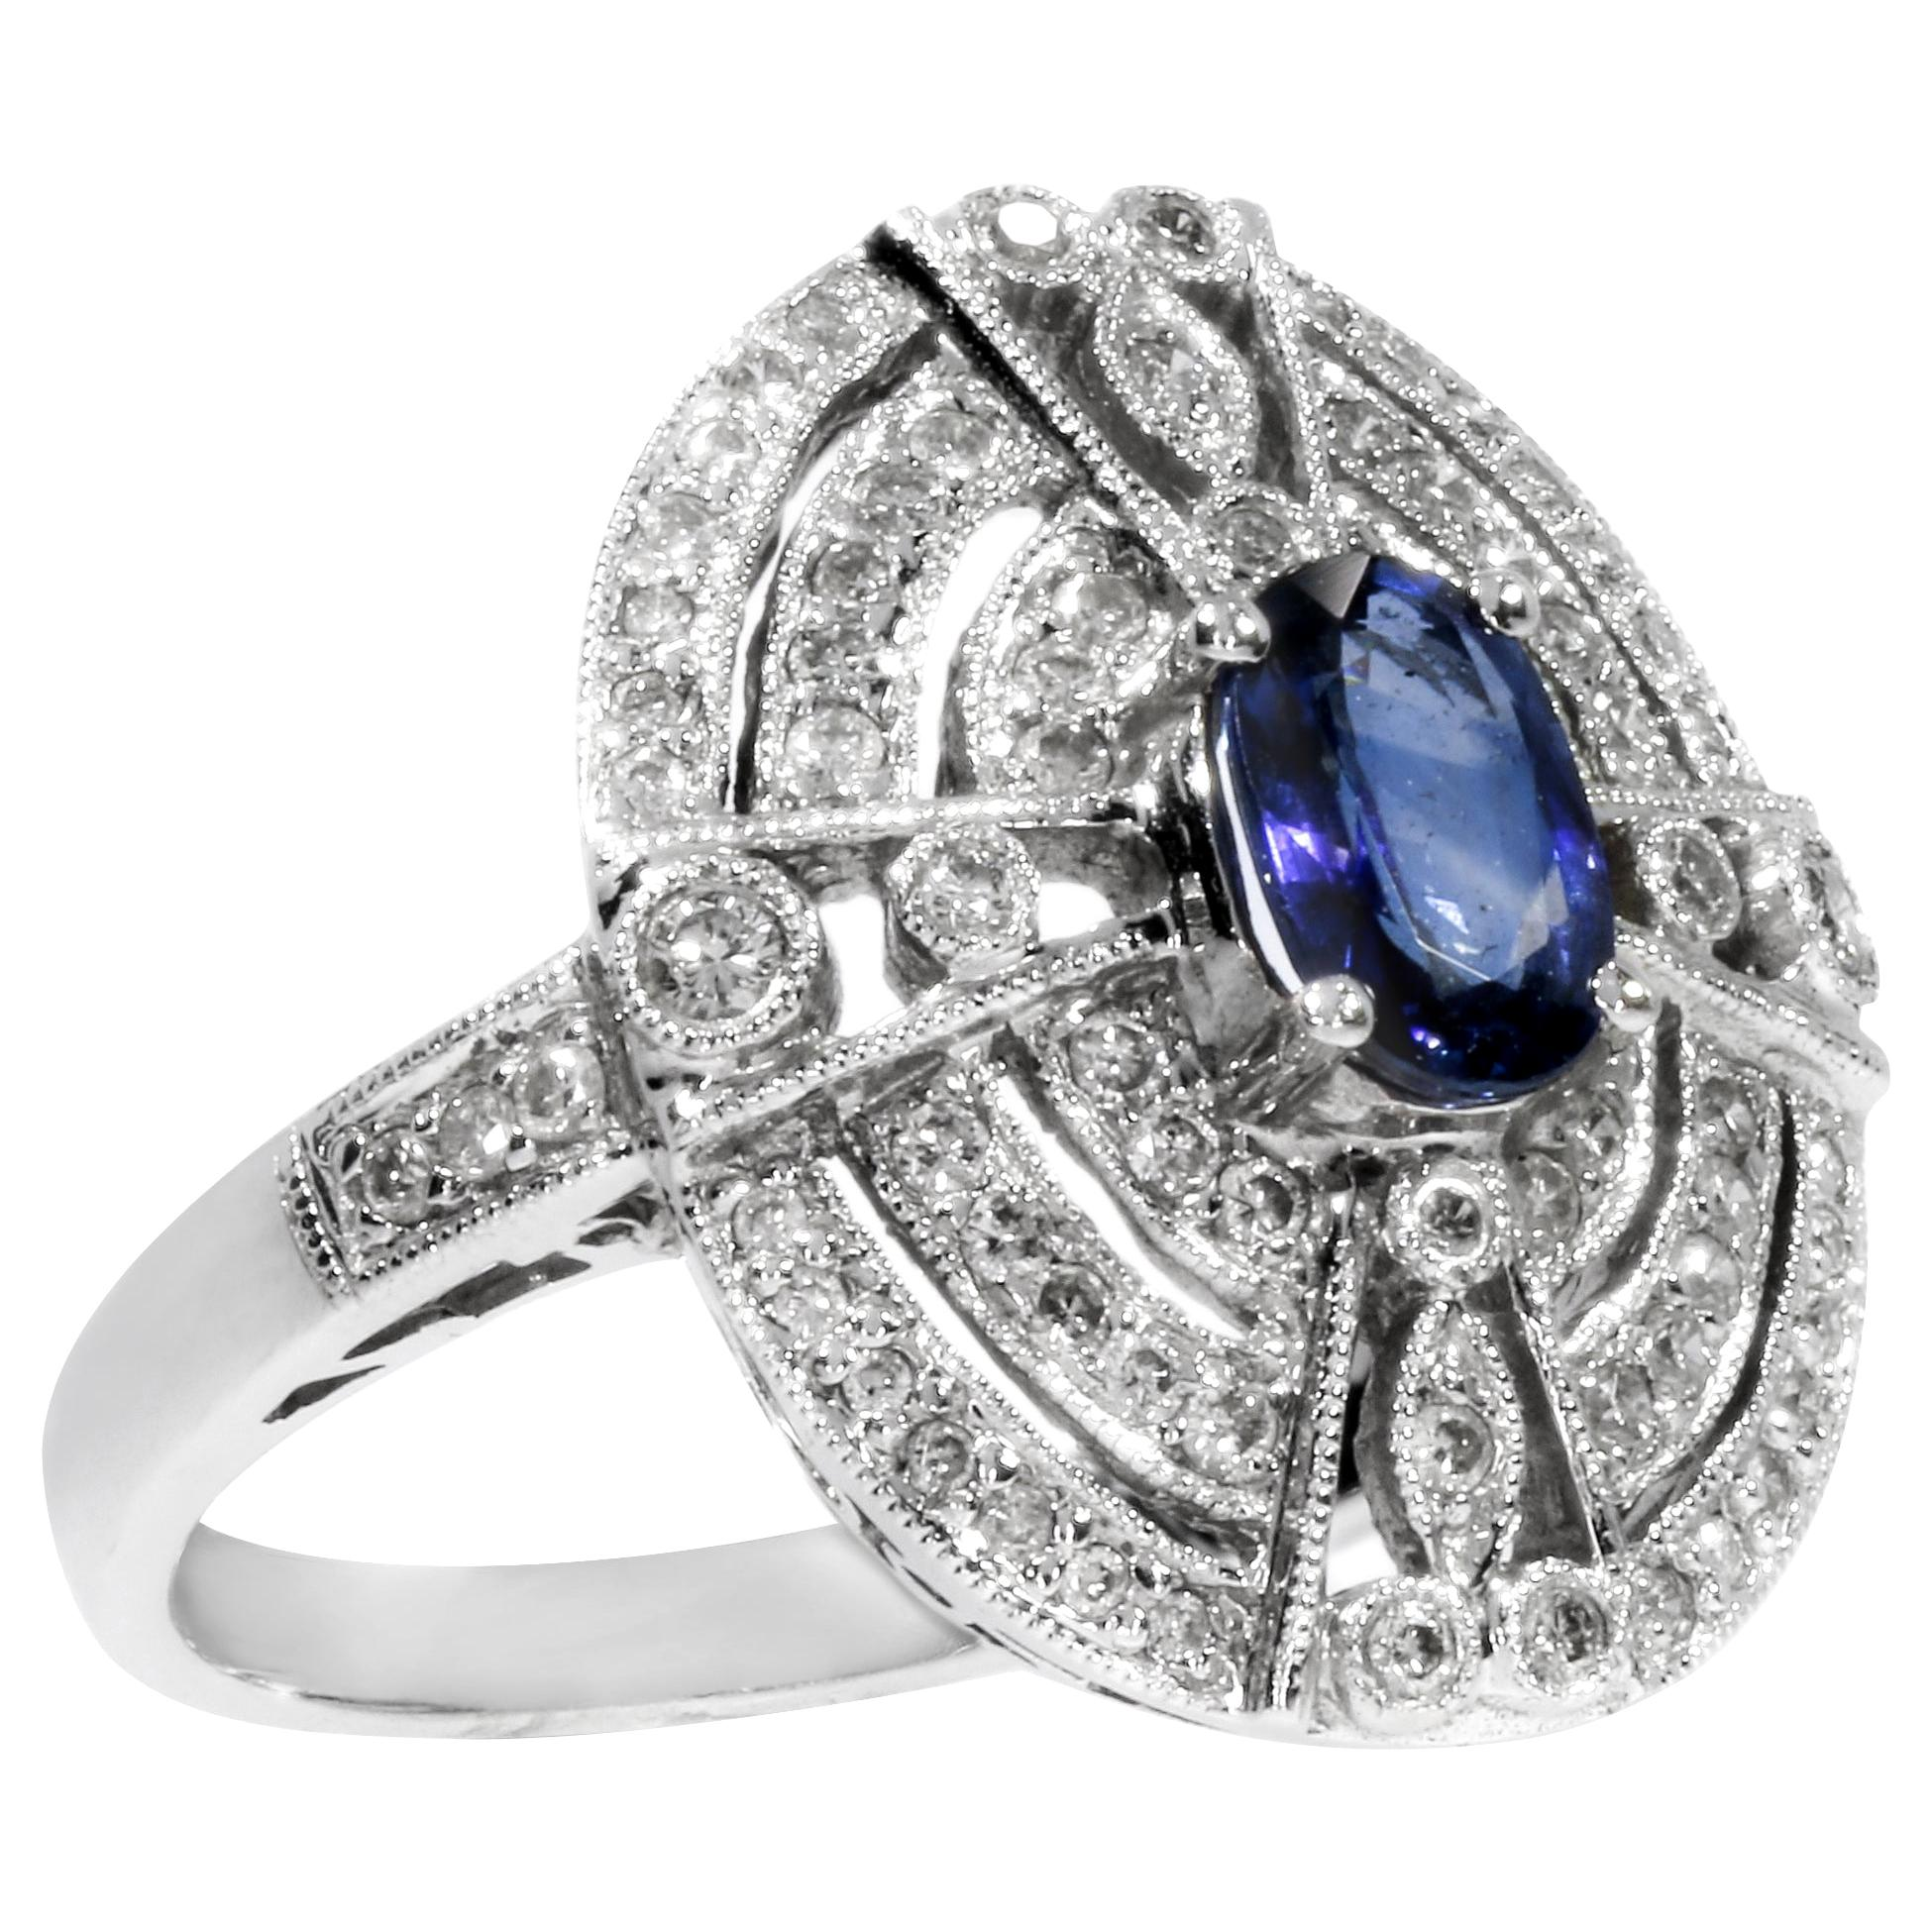 18 Karat White Gold Ring with 78 Diamonds and Sapphire